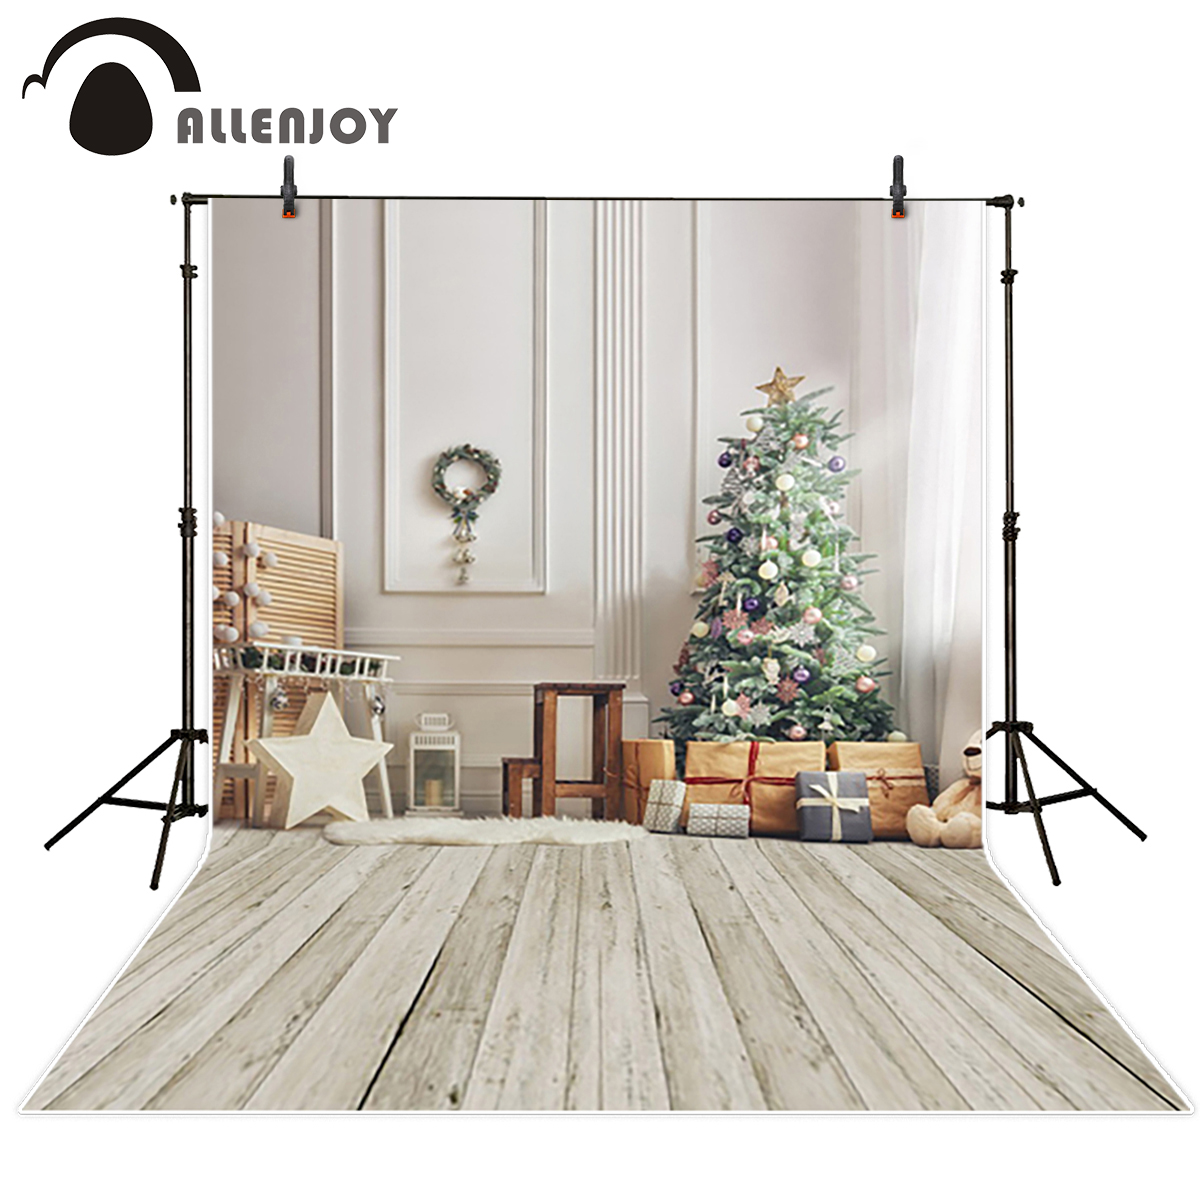 Allenjoy vinyl backdrops for photography backdrop Gift Christmas tree White Christmas Background for photo vinyl